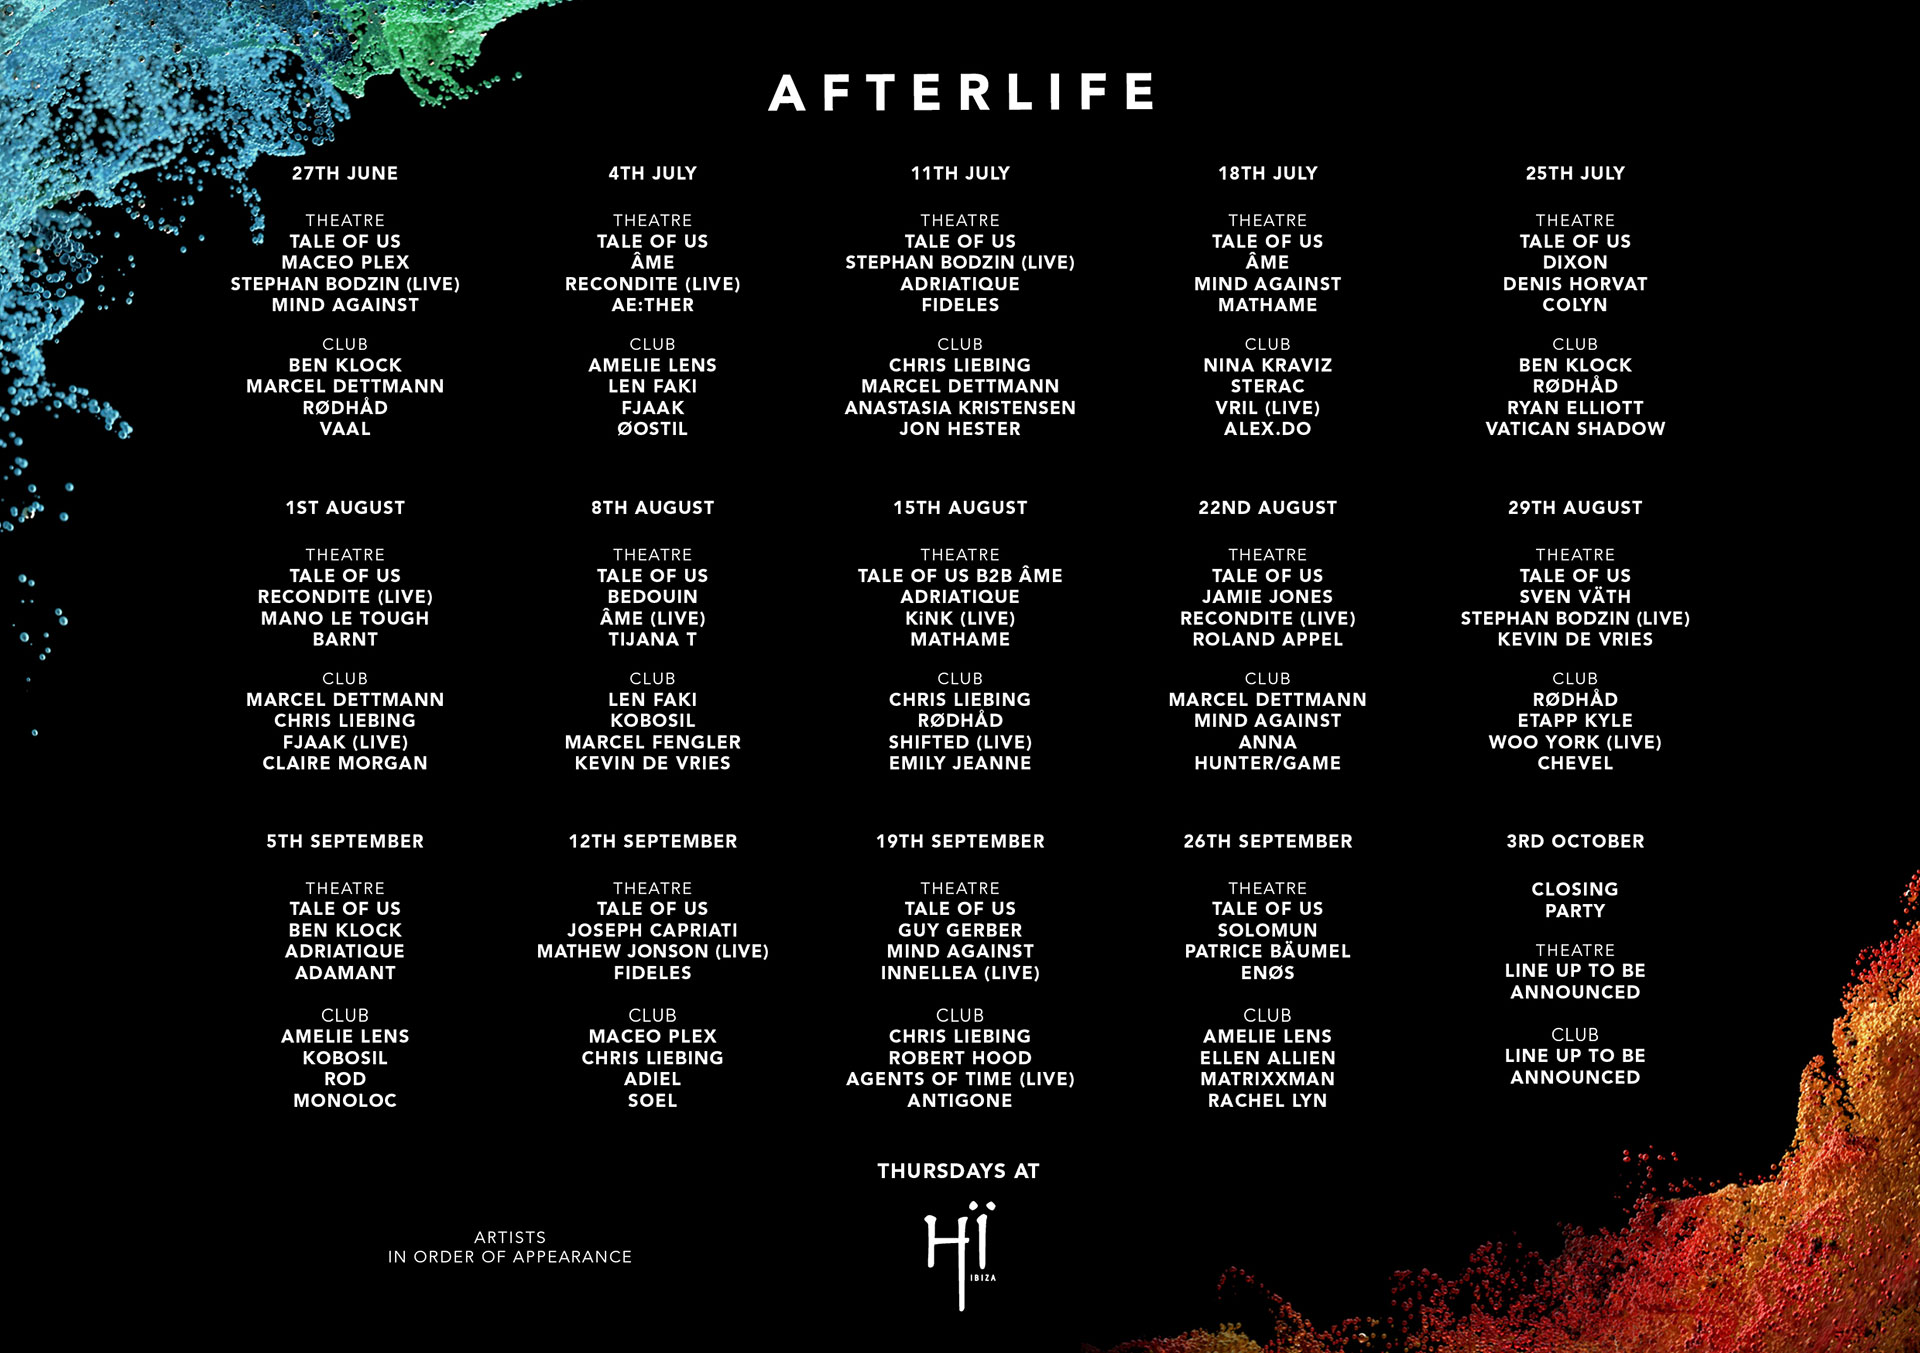 hi-ibiza-afterlife-2019-lineup-oz-edm